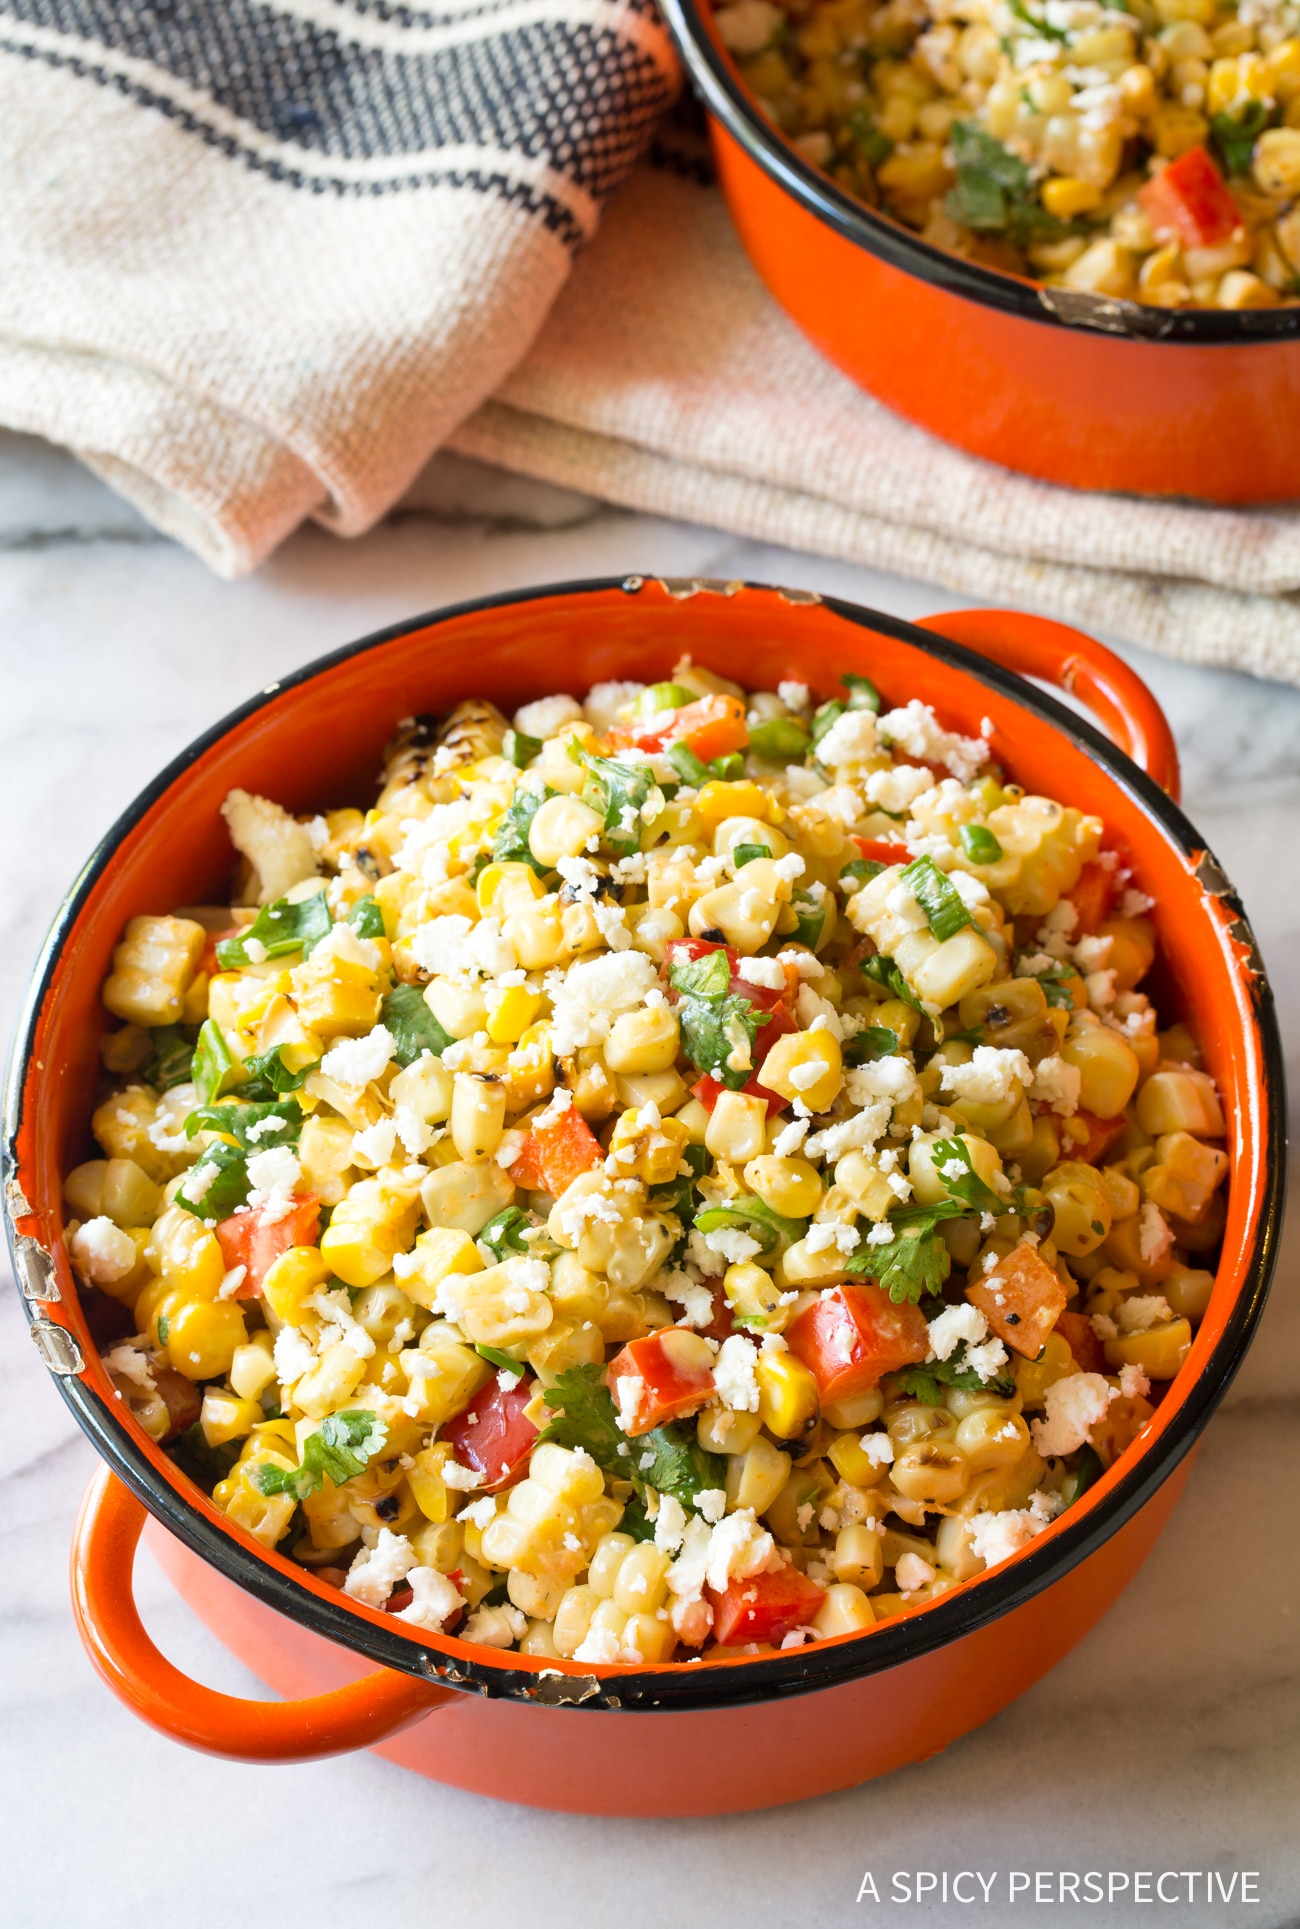 Simple Grilled Mexican Street Corn Salad